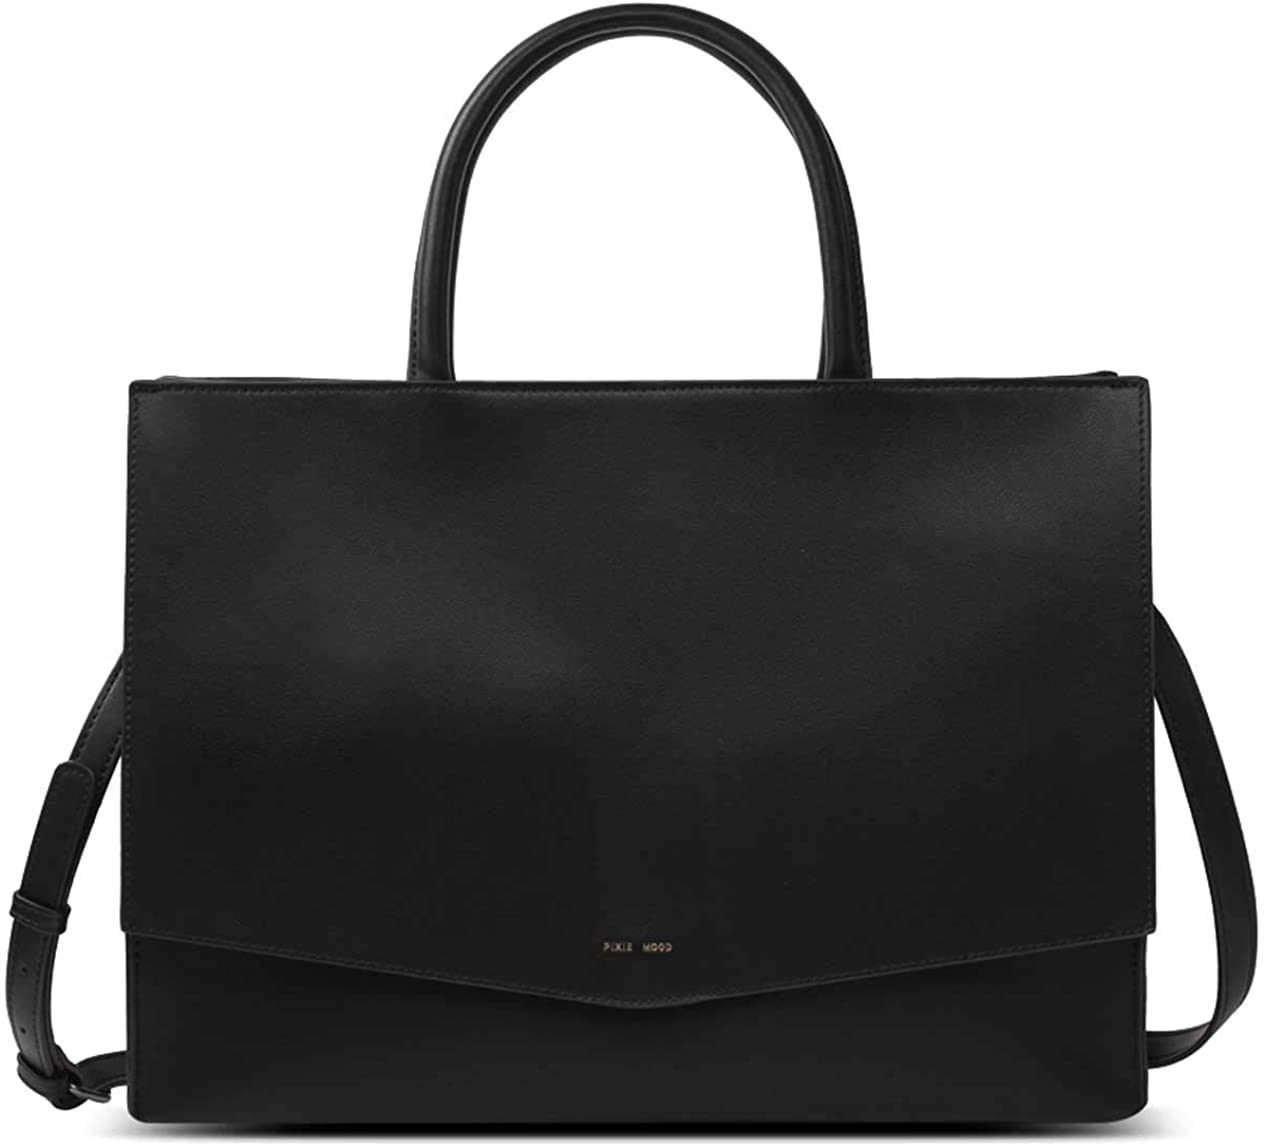 Pixie Max 44% OFF Mood Caitlin 15.5 x 11.5 Leather with Vegan Bag Tote Max 89% OFF Large